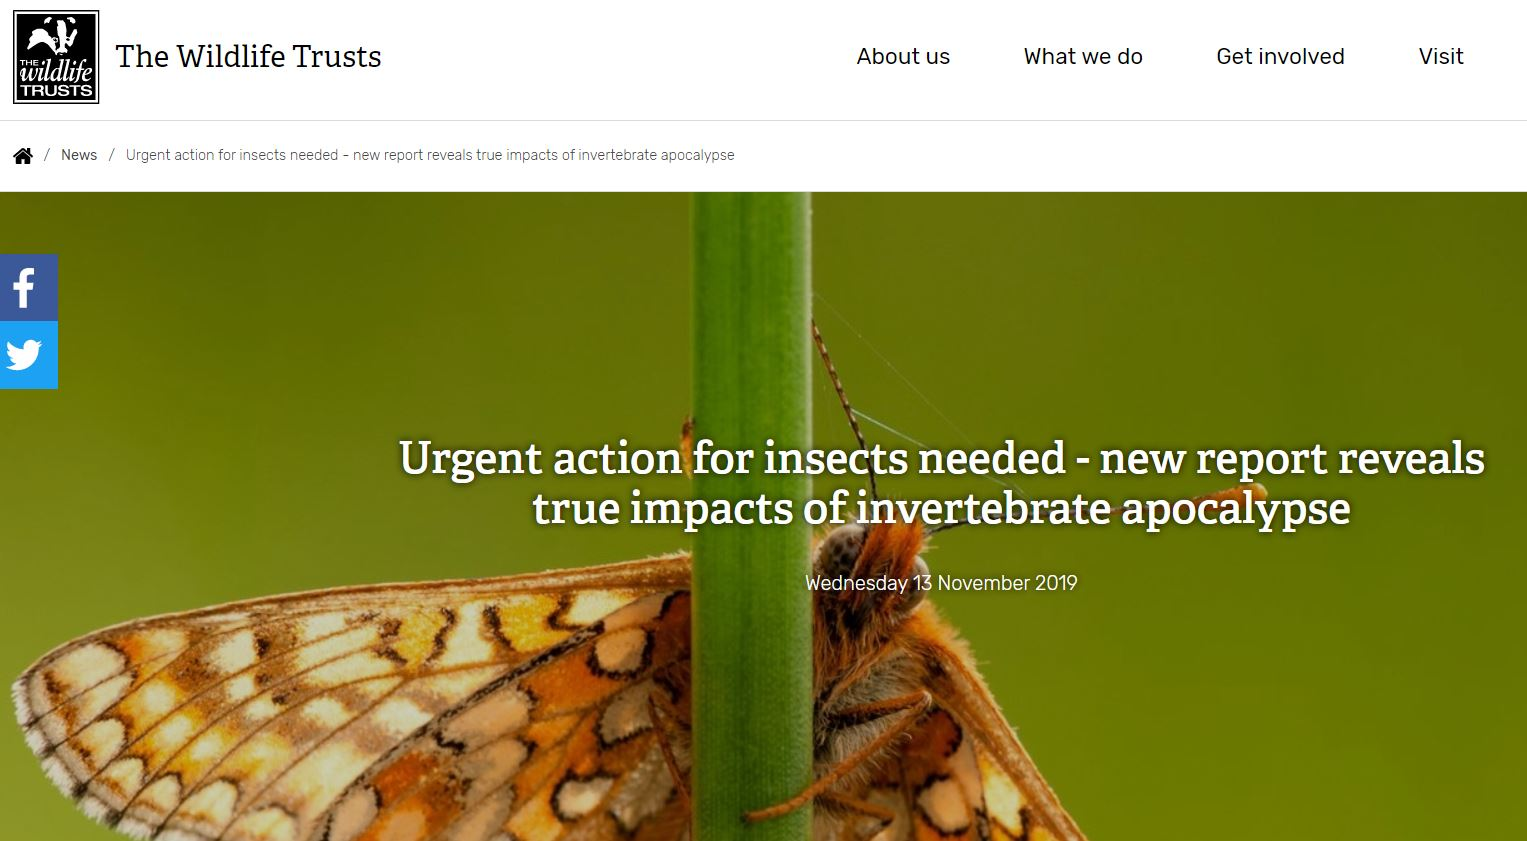 The Wildlife Trusts - Urgent action for insects needed - new report reveals